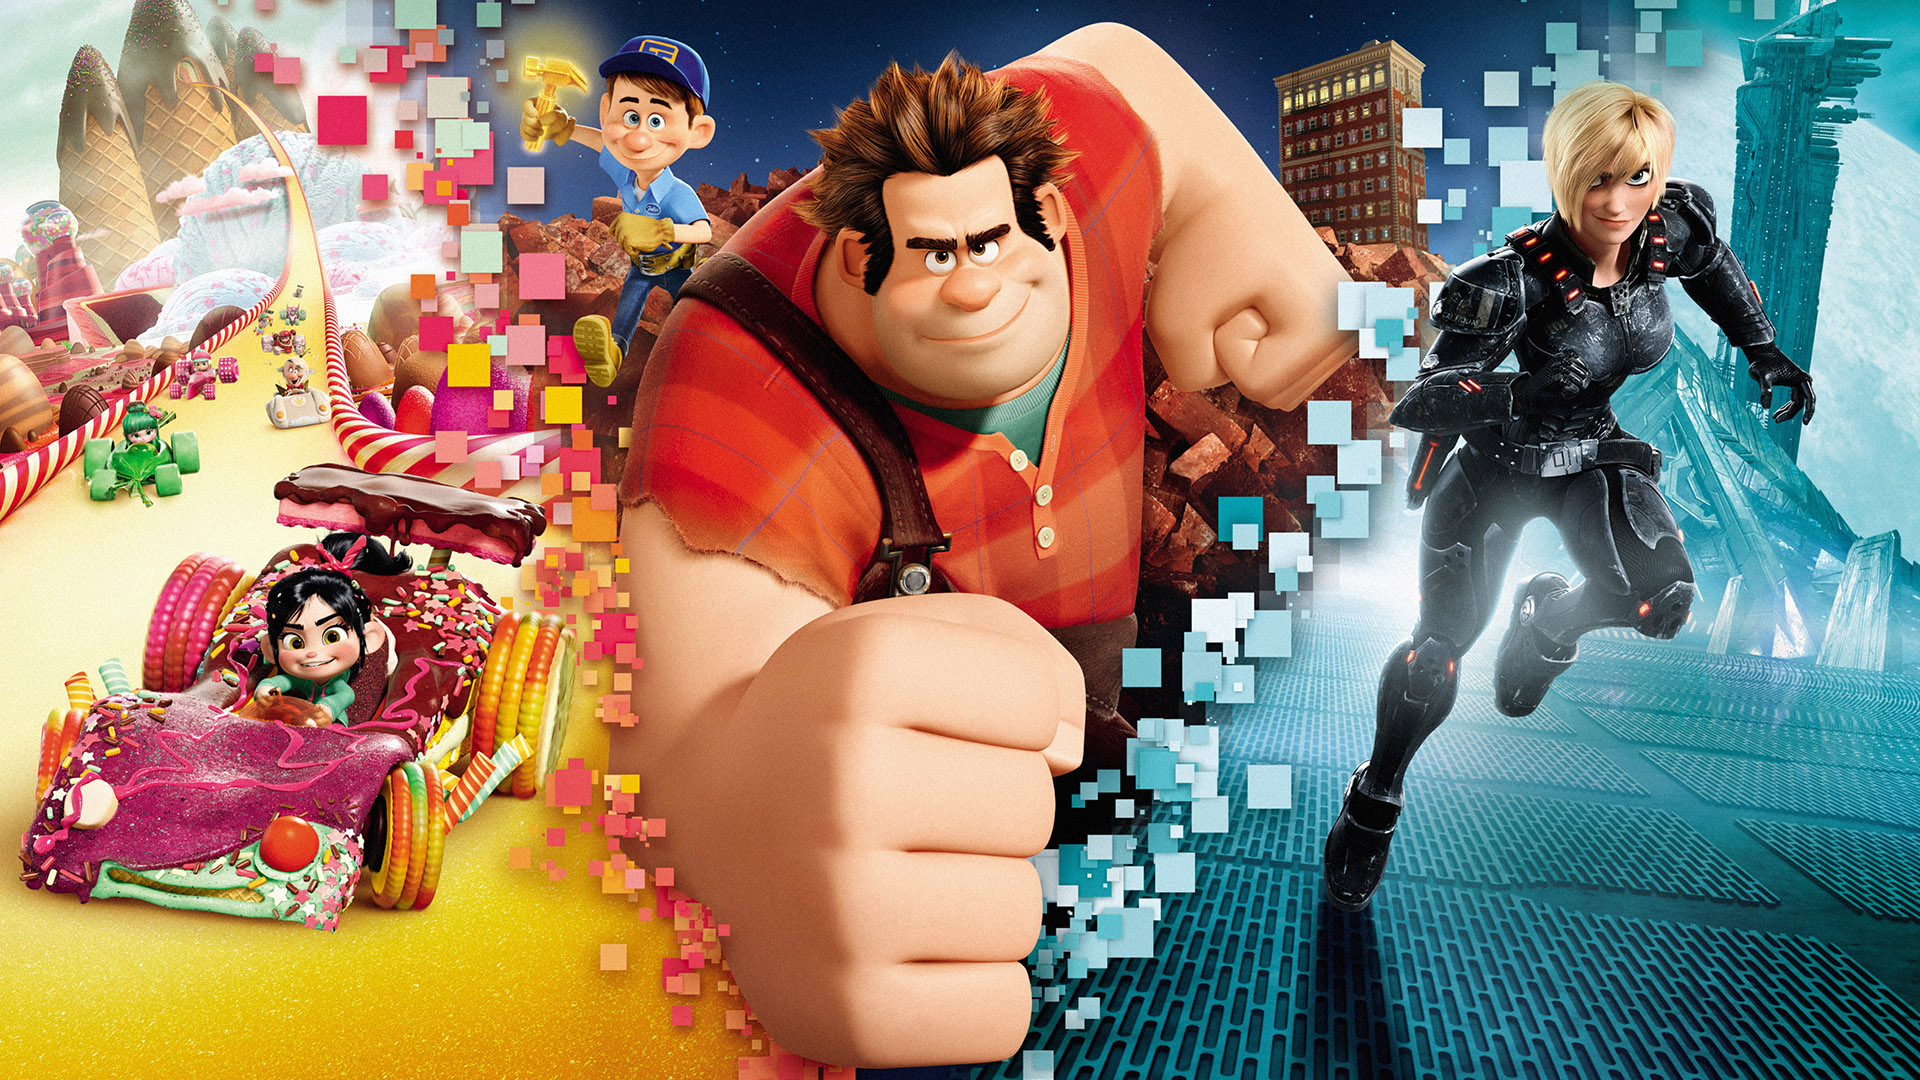 Wreck-It Ralph Delivers, But Did It Need More?